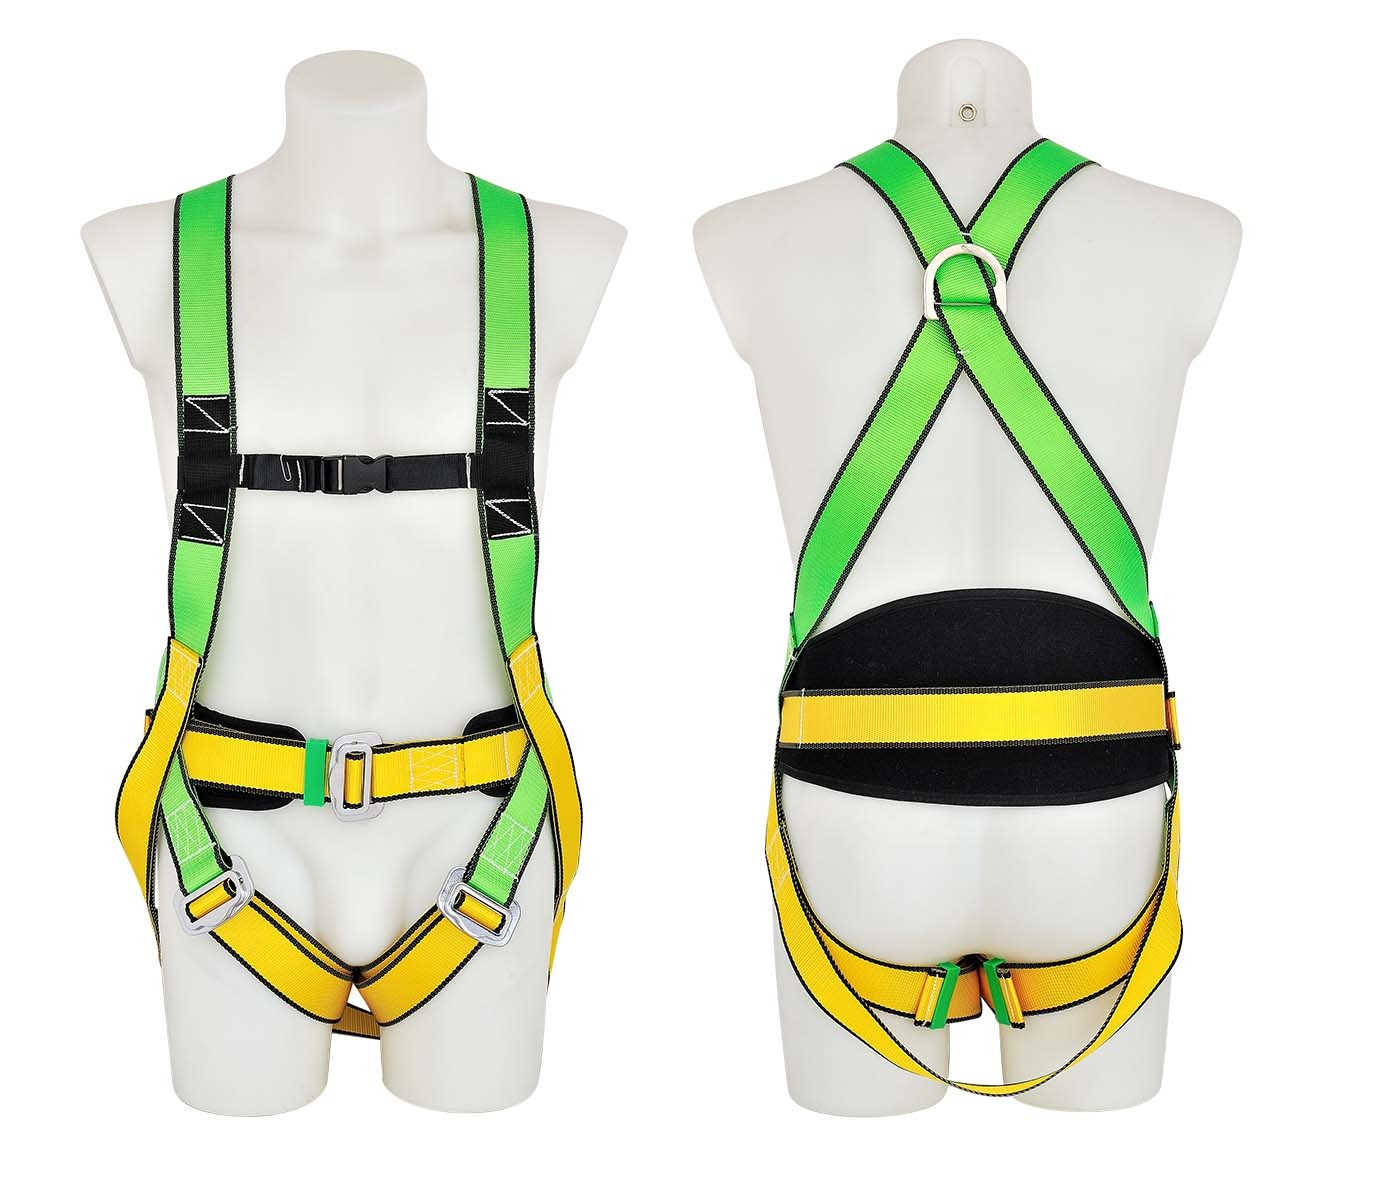 Full Body Safety Harness with Waist Support